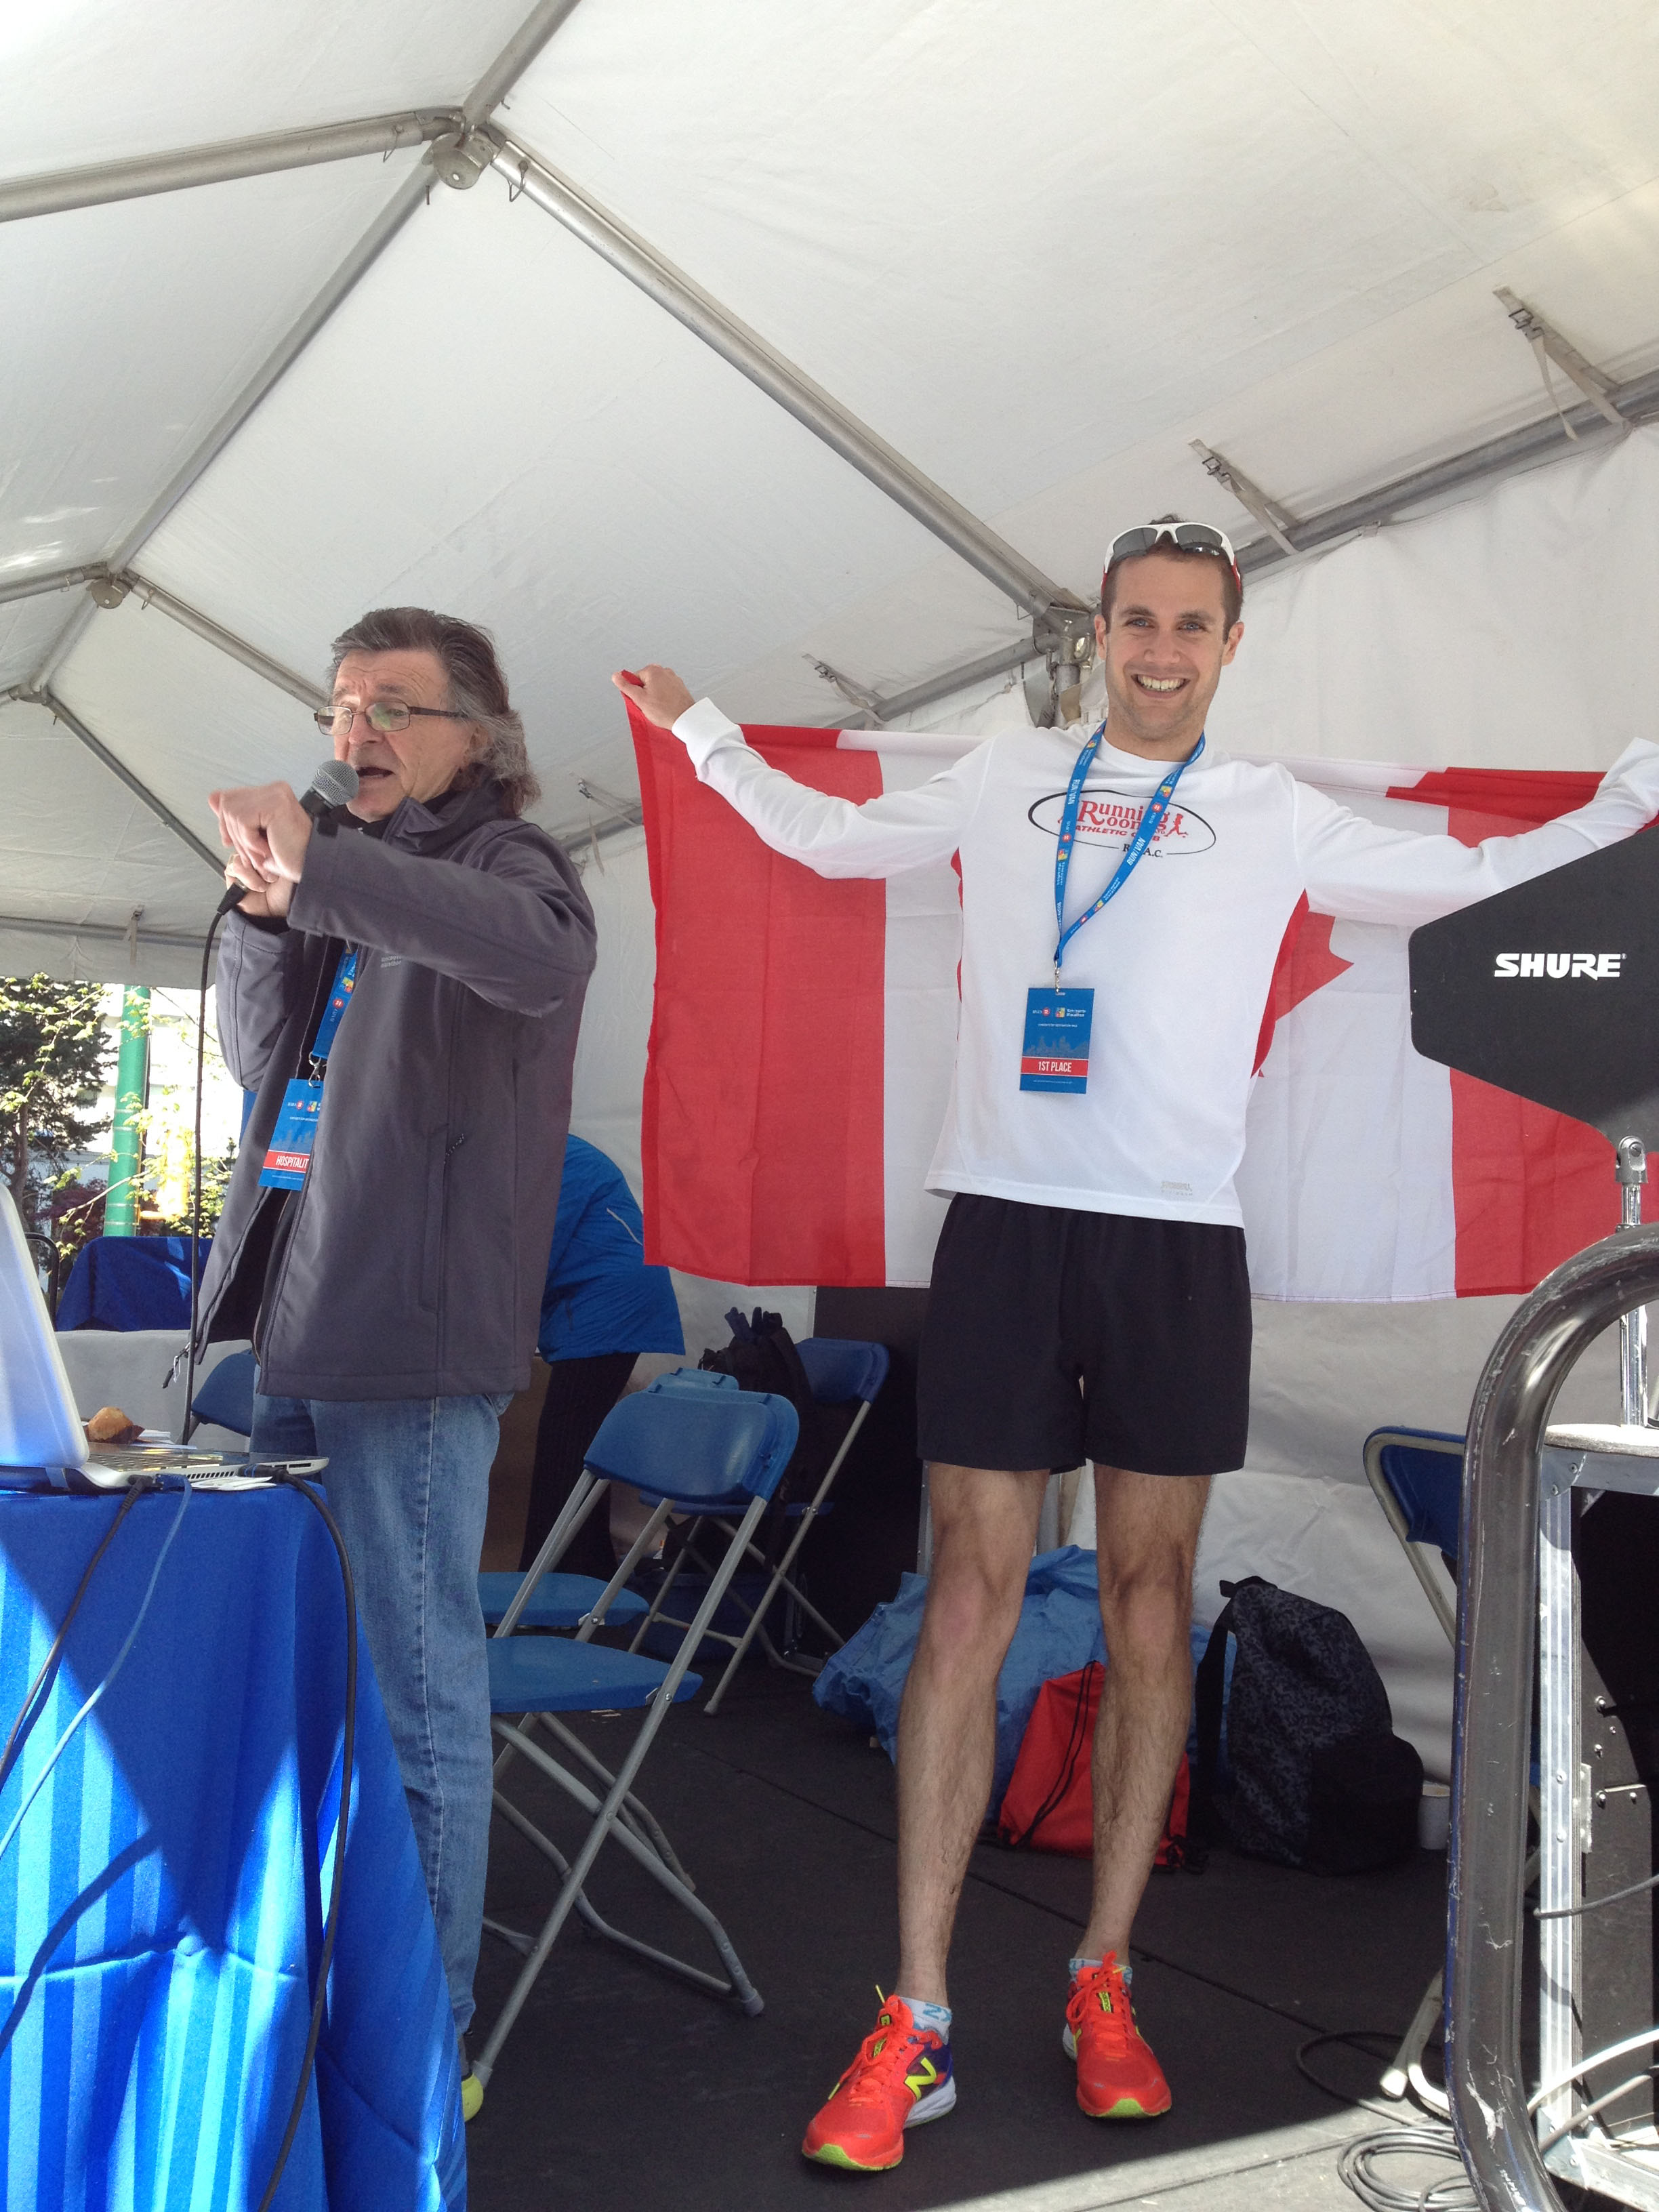 Announcer Steve King (L) and Mike Trites (R) - 1st Canadian in the BMO Vancouver Full Marathon